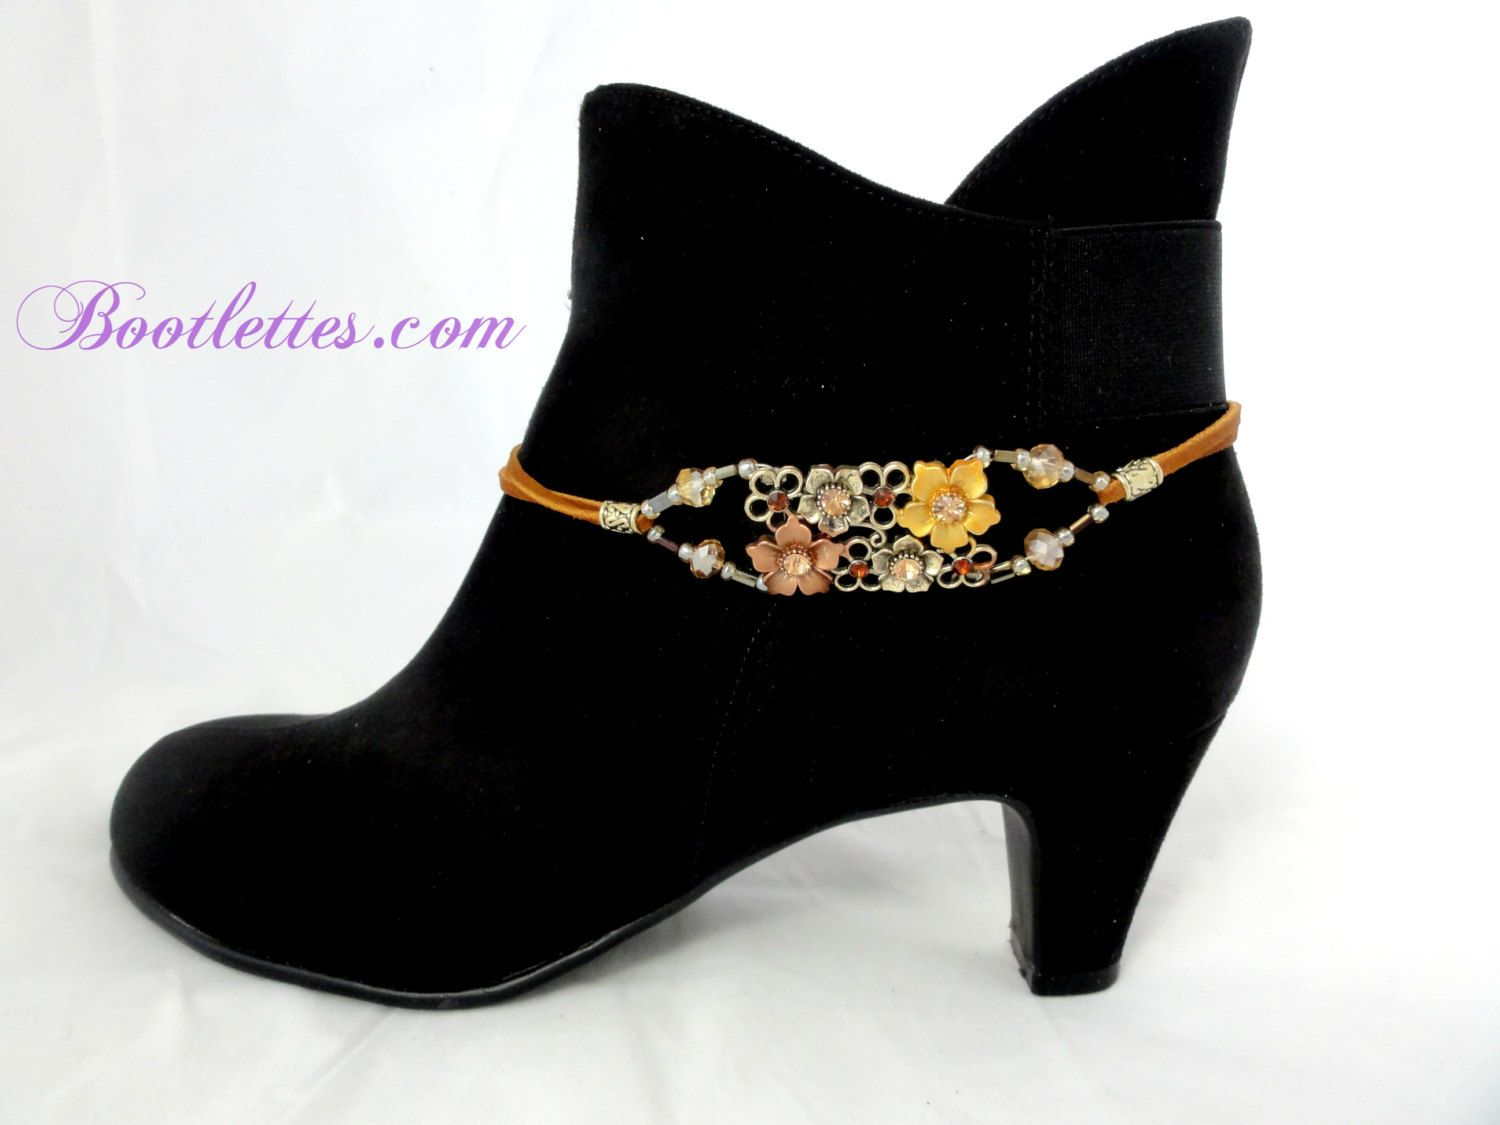 Boot Bracelets, Gifts for Women, Boot Jewelry, Boot Accessories ...